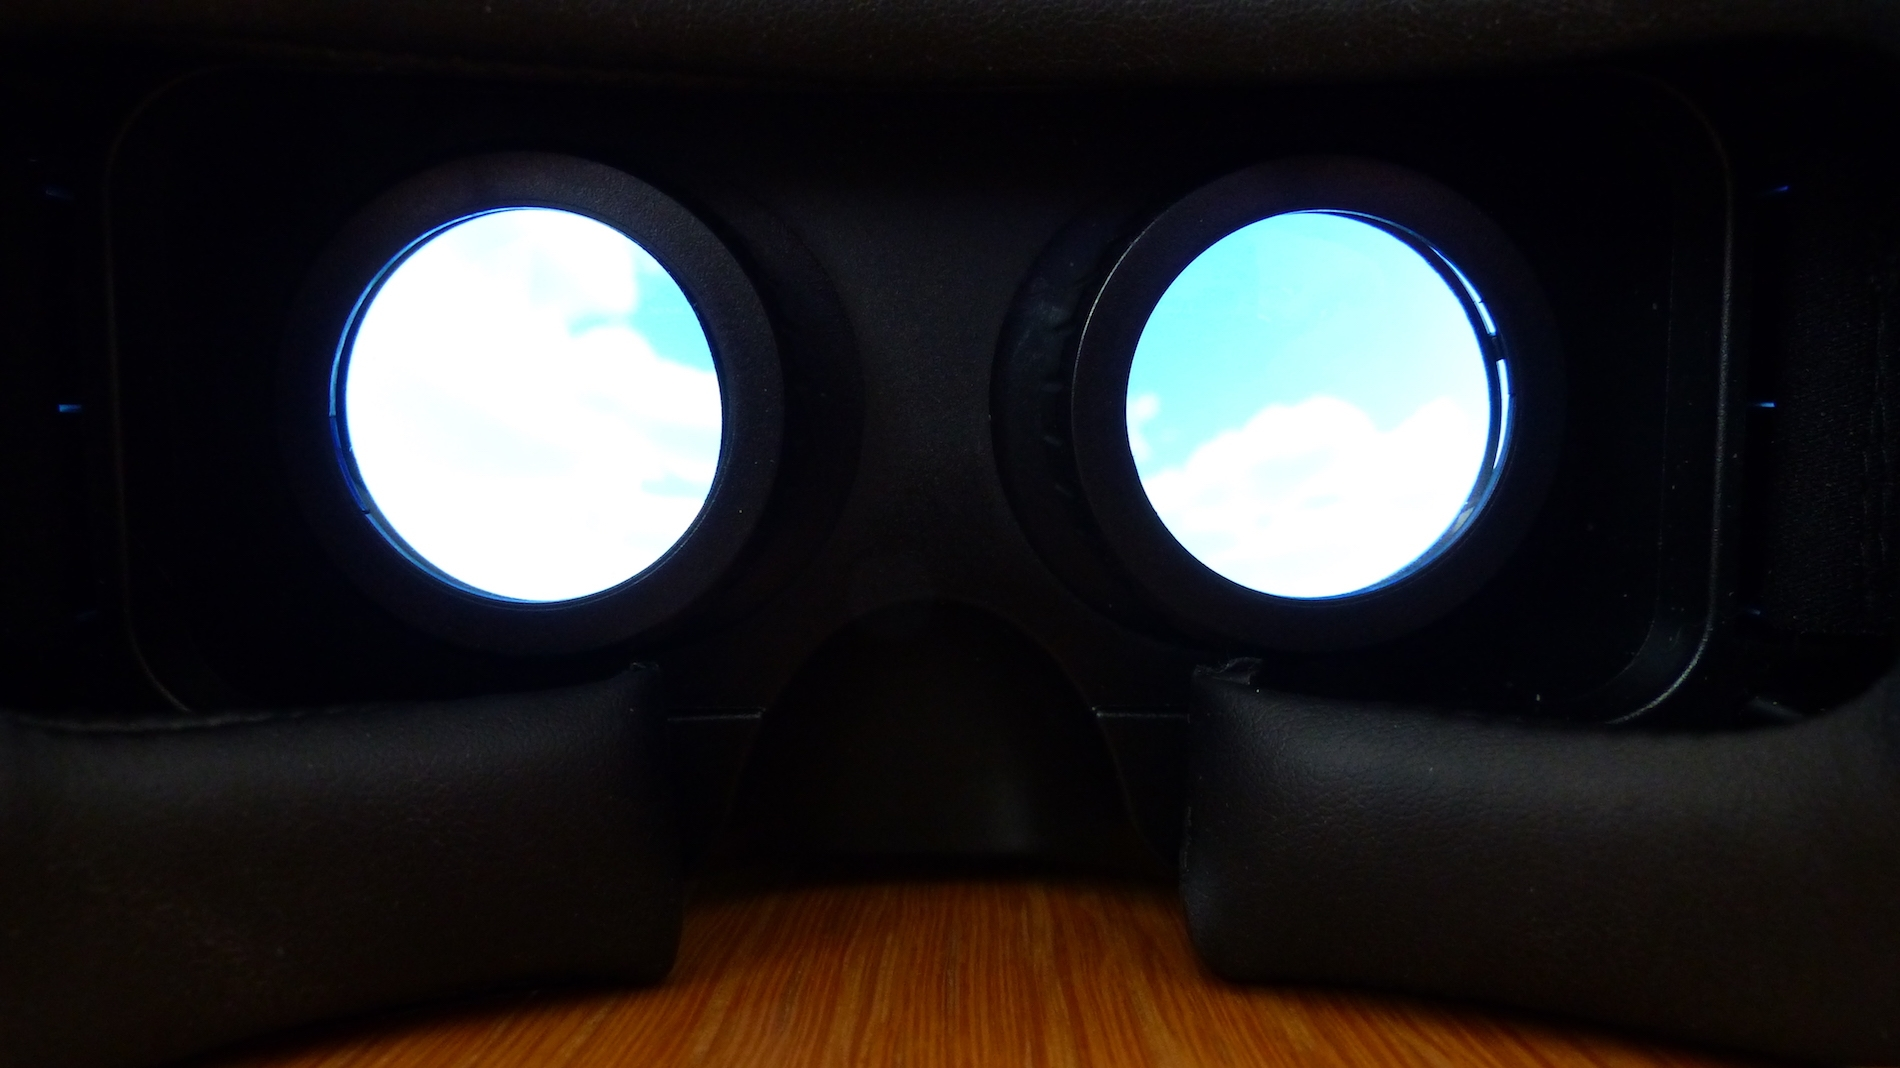 vr shinecon 3d vr glasses im test. Black Bedroom Furniture Sets. Home Design Ideas